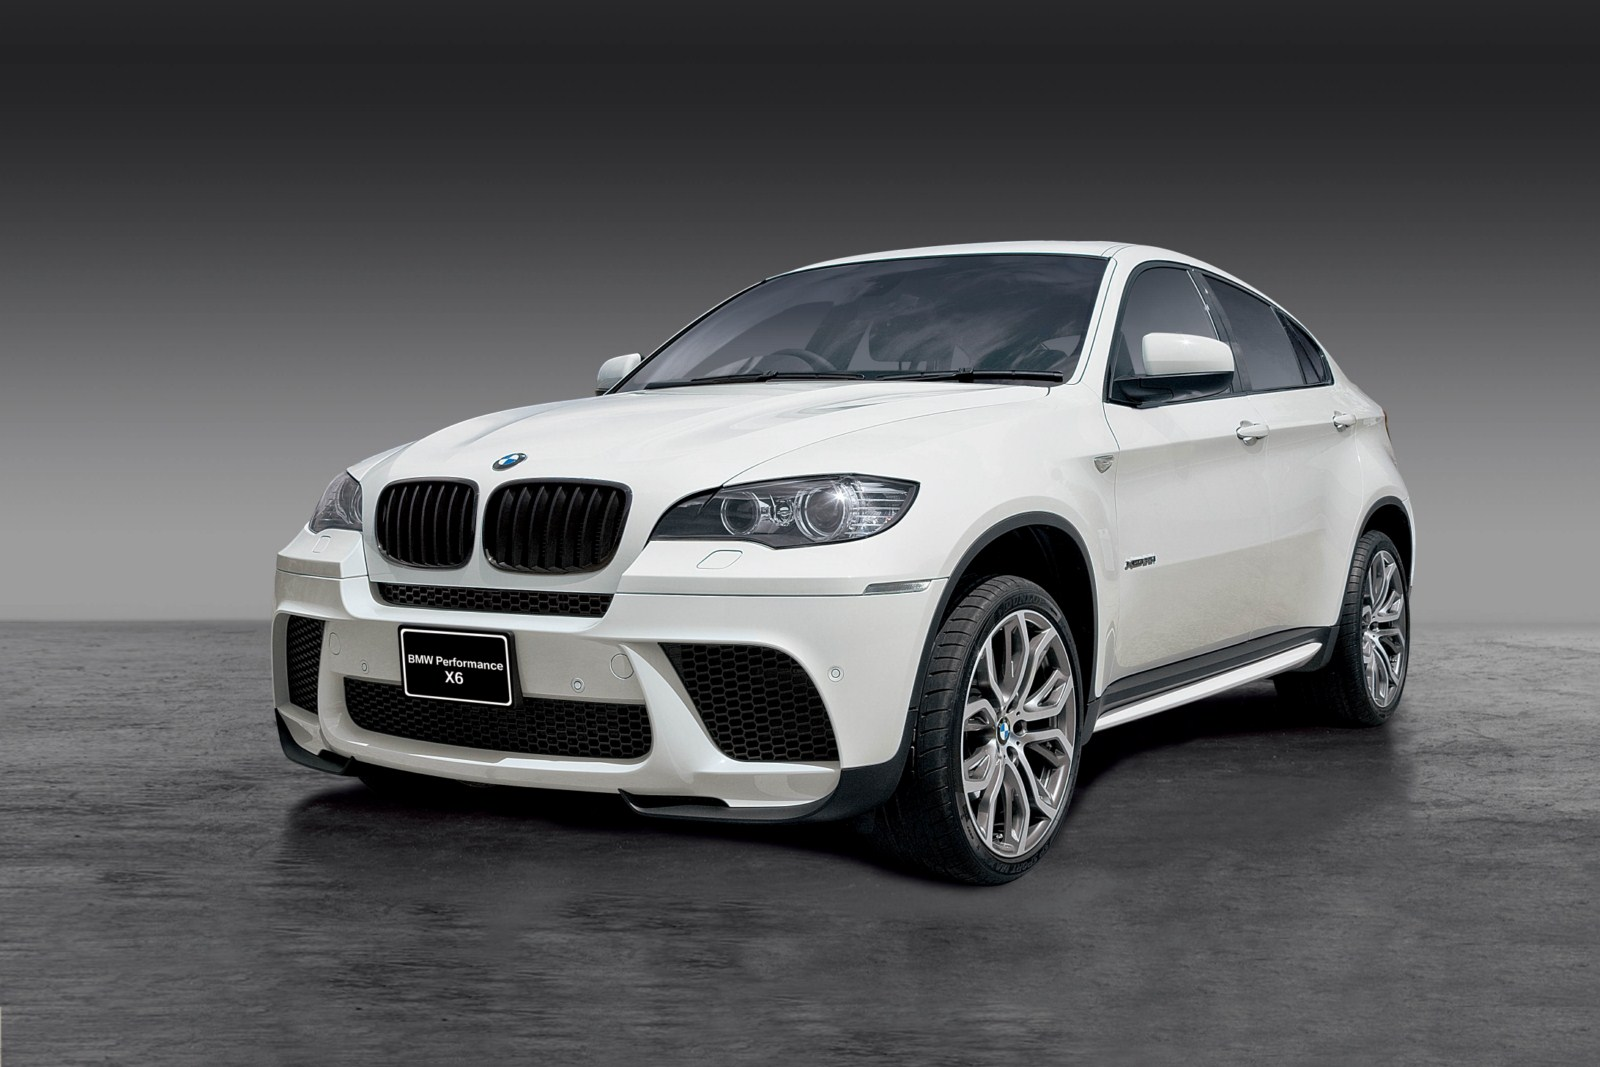 New Photos Bmw X6 With Performance Parts